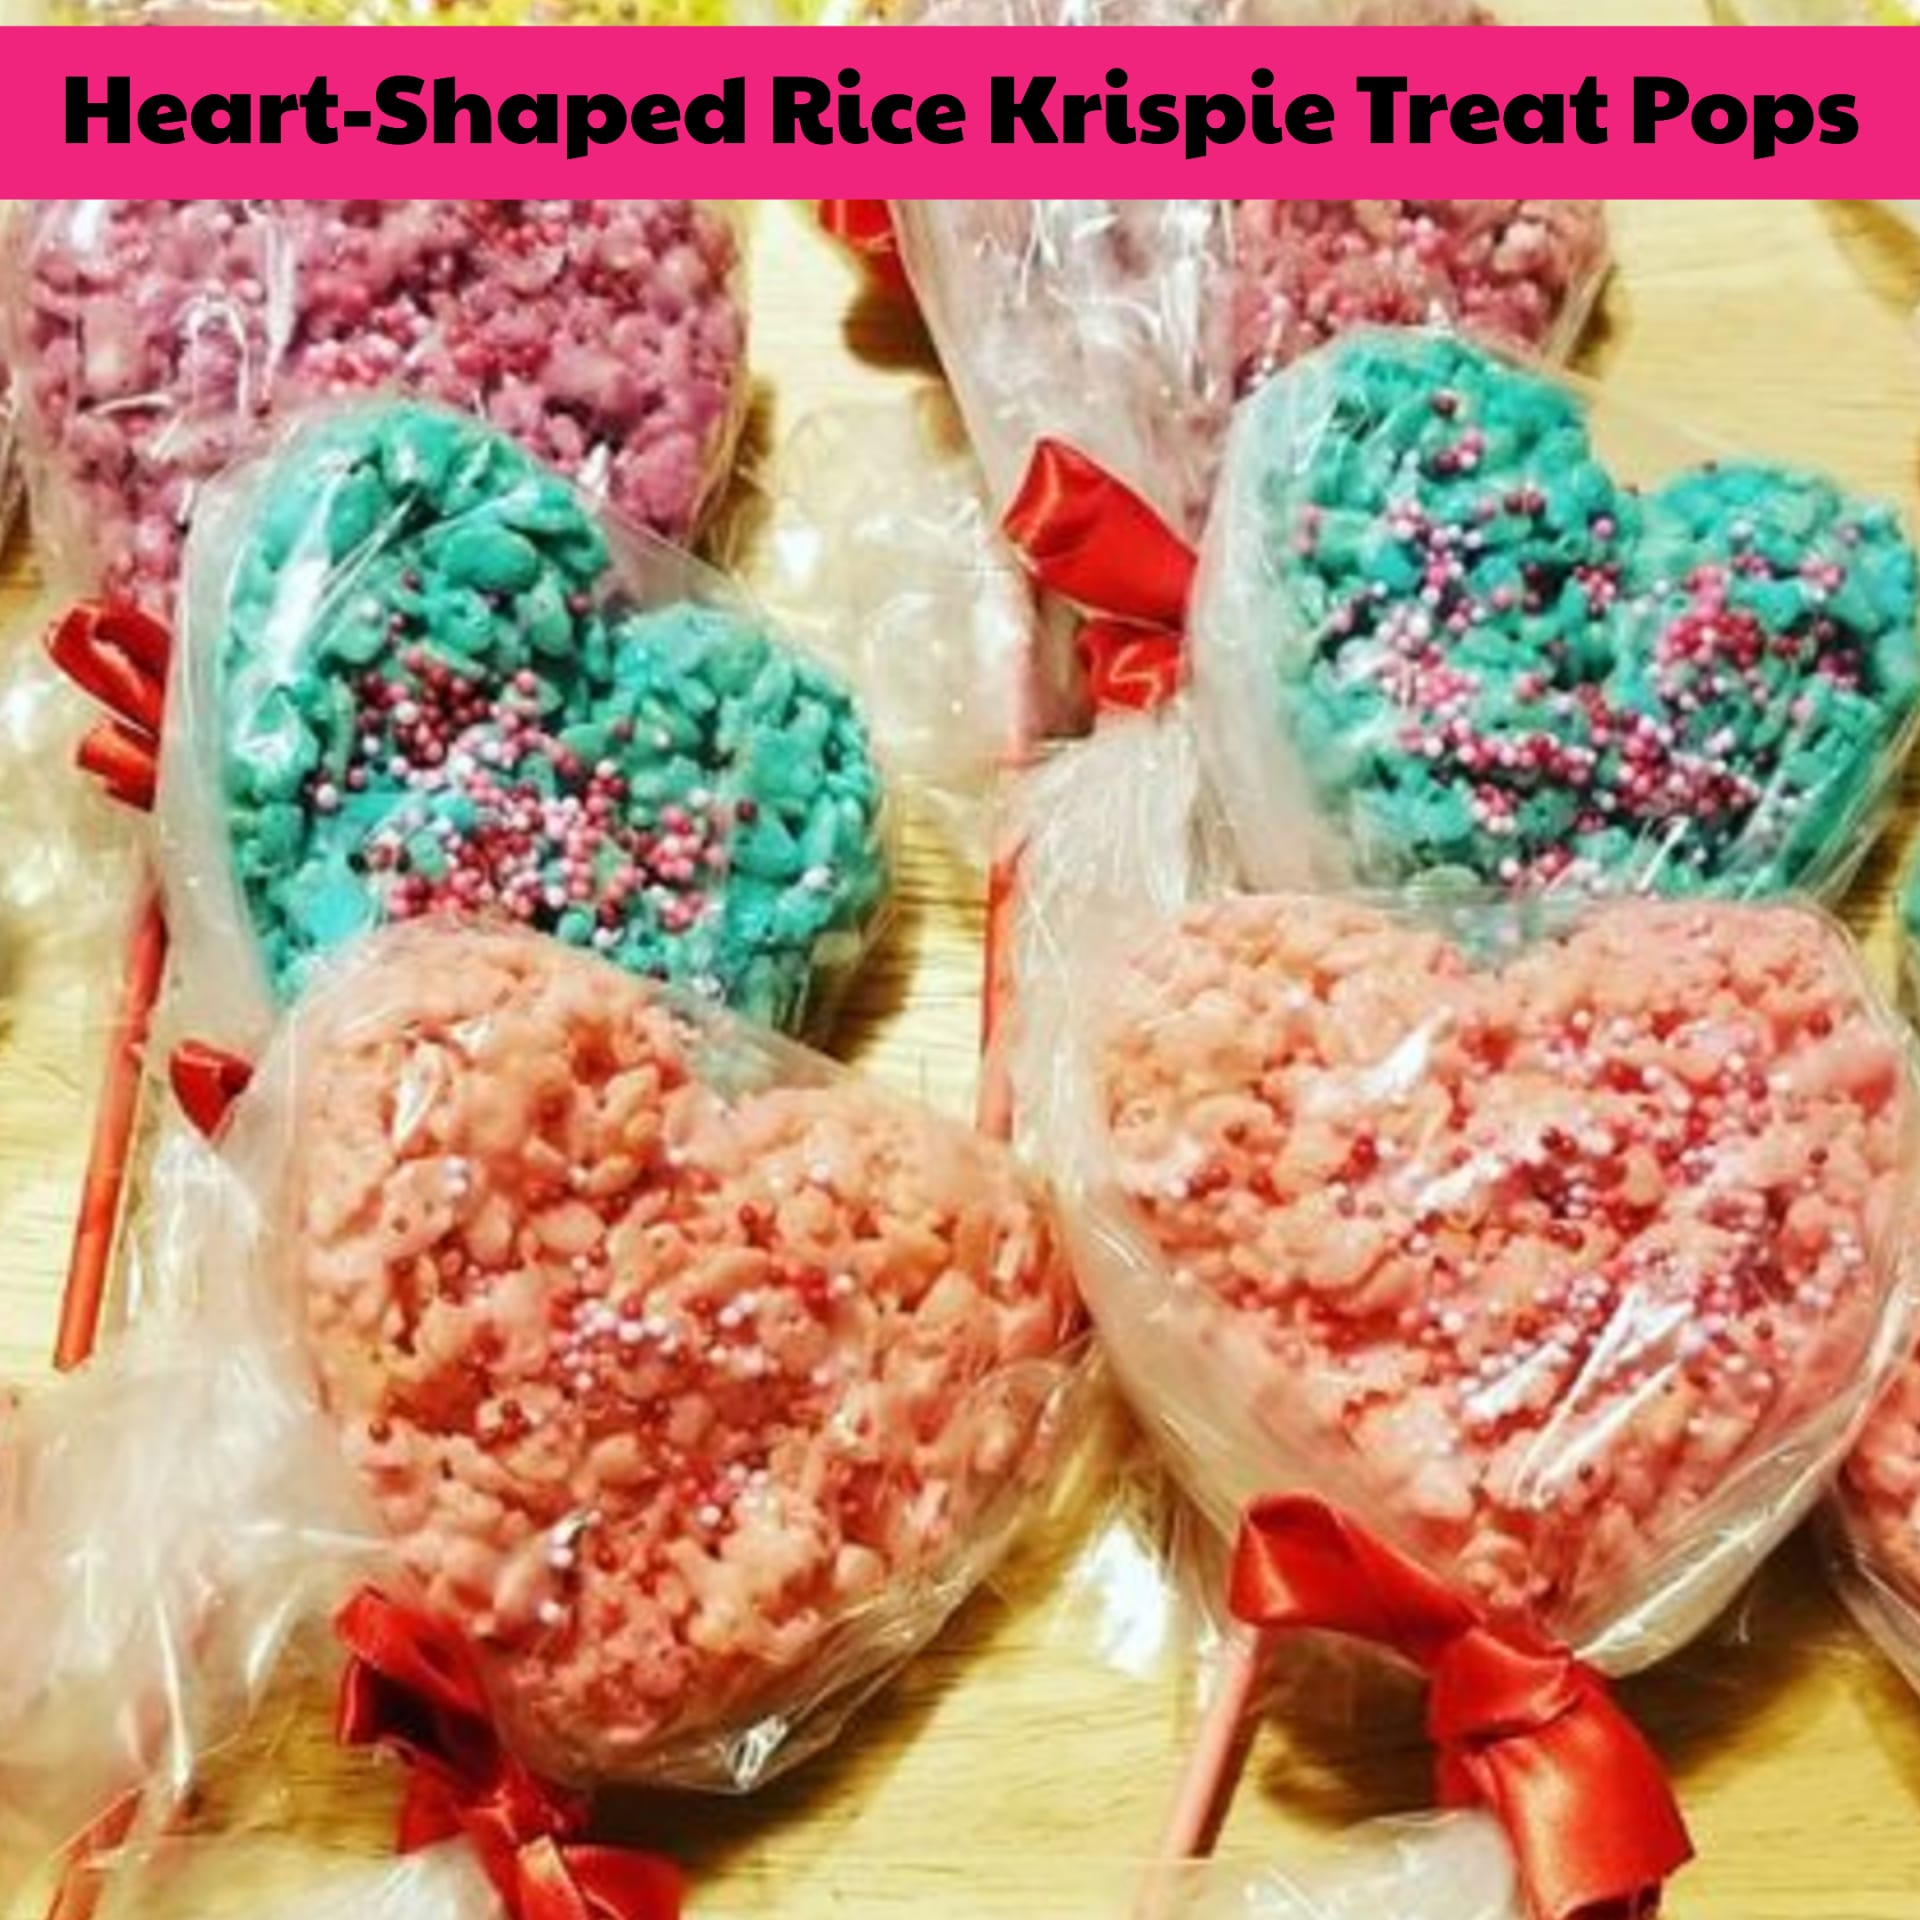 DIY school valentines for classroom, teachers or fun food for a Valentine's Day party at school - fun and easy Rice Krispie treats for parties